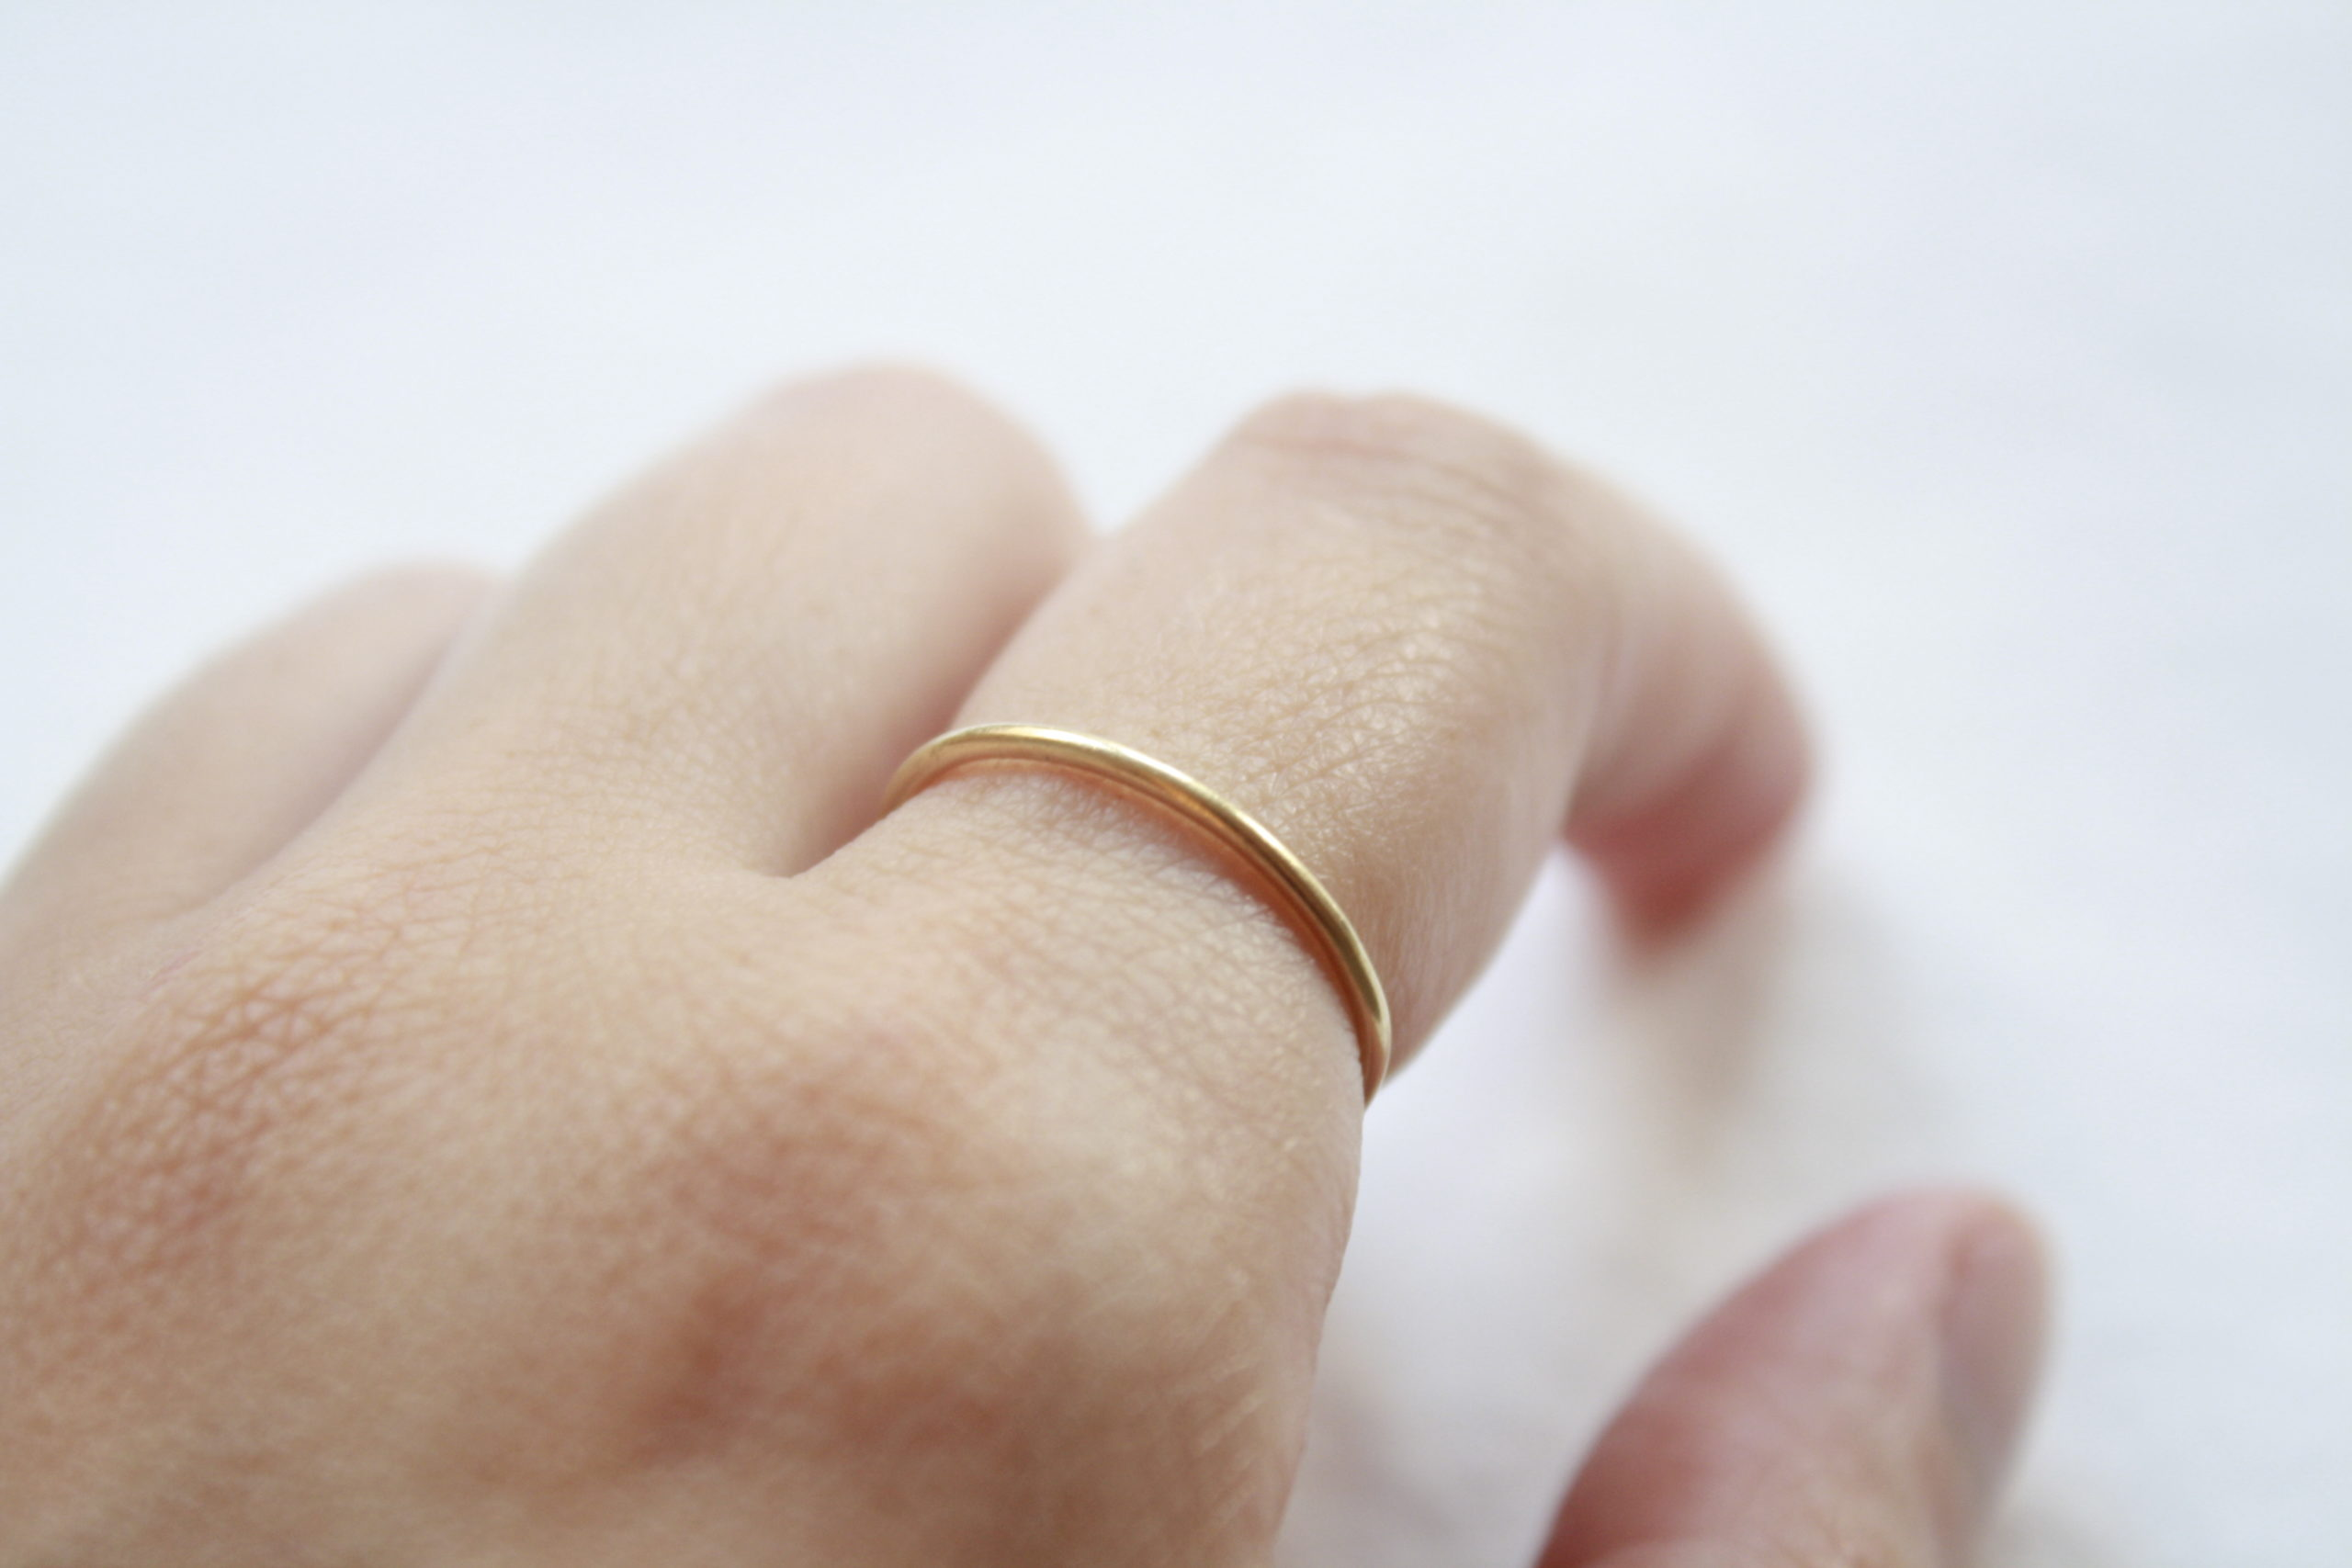 Anillo simple y elegante fino de oro 18k